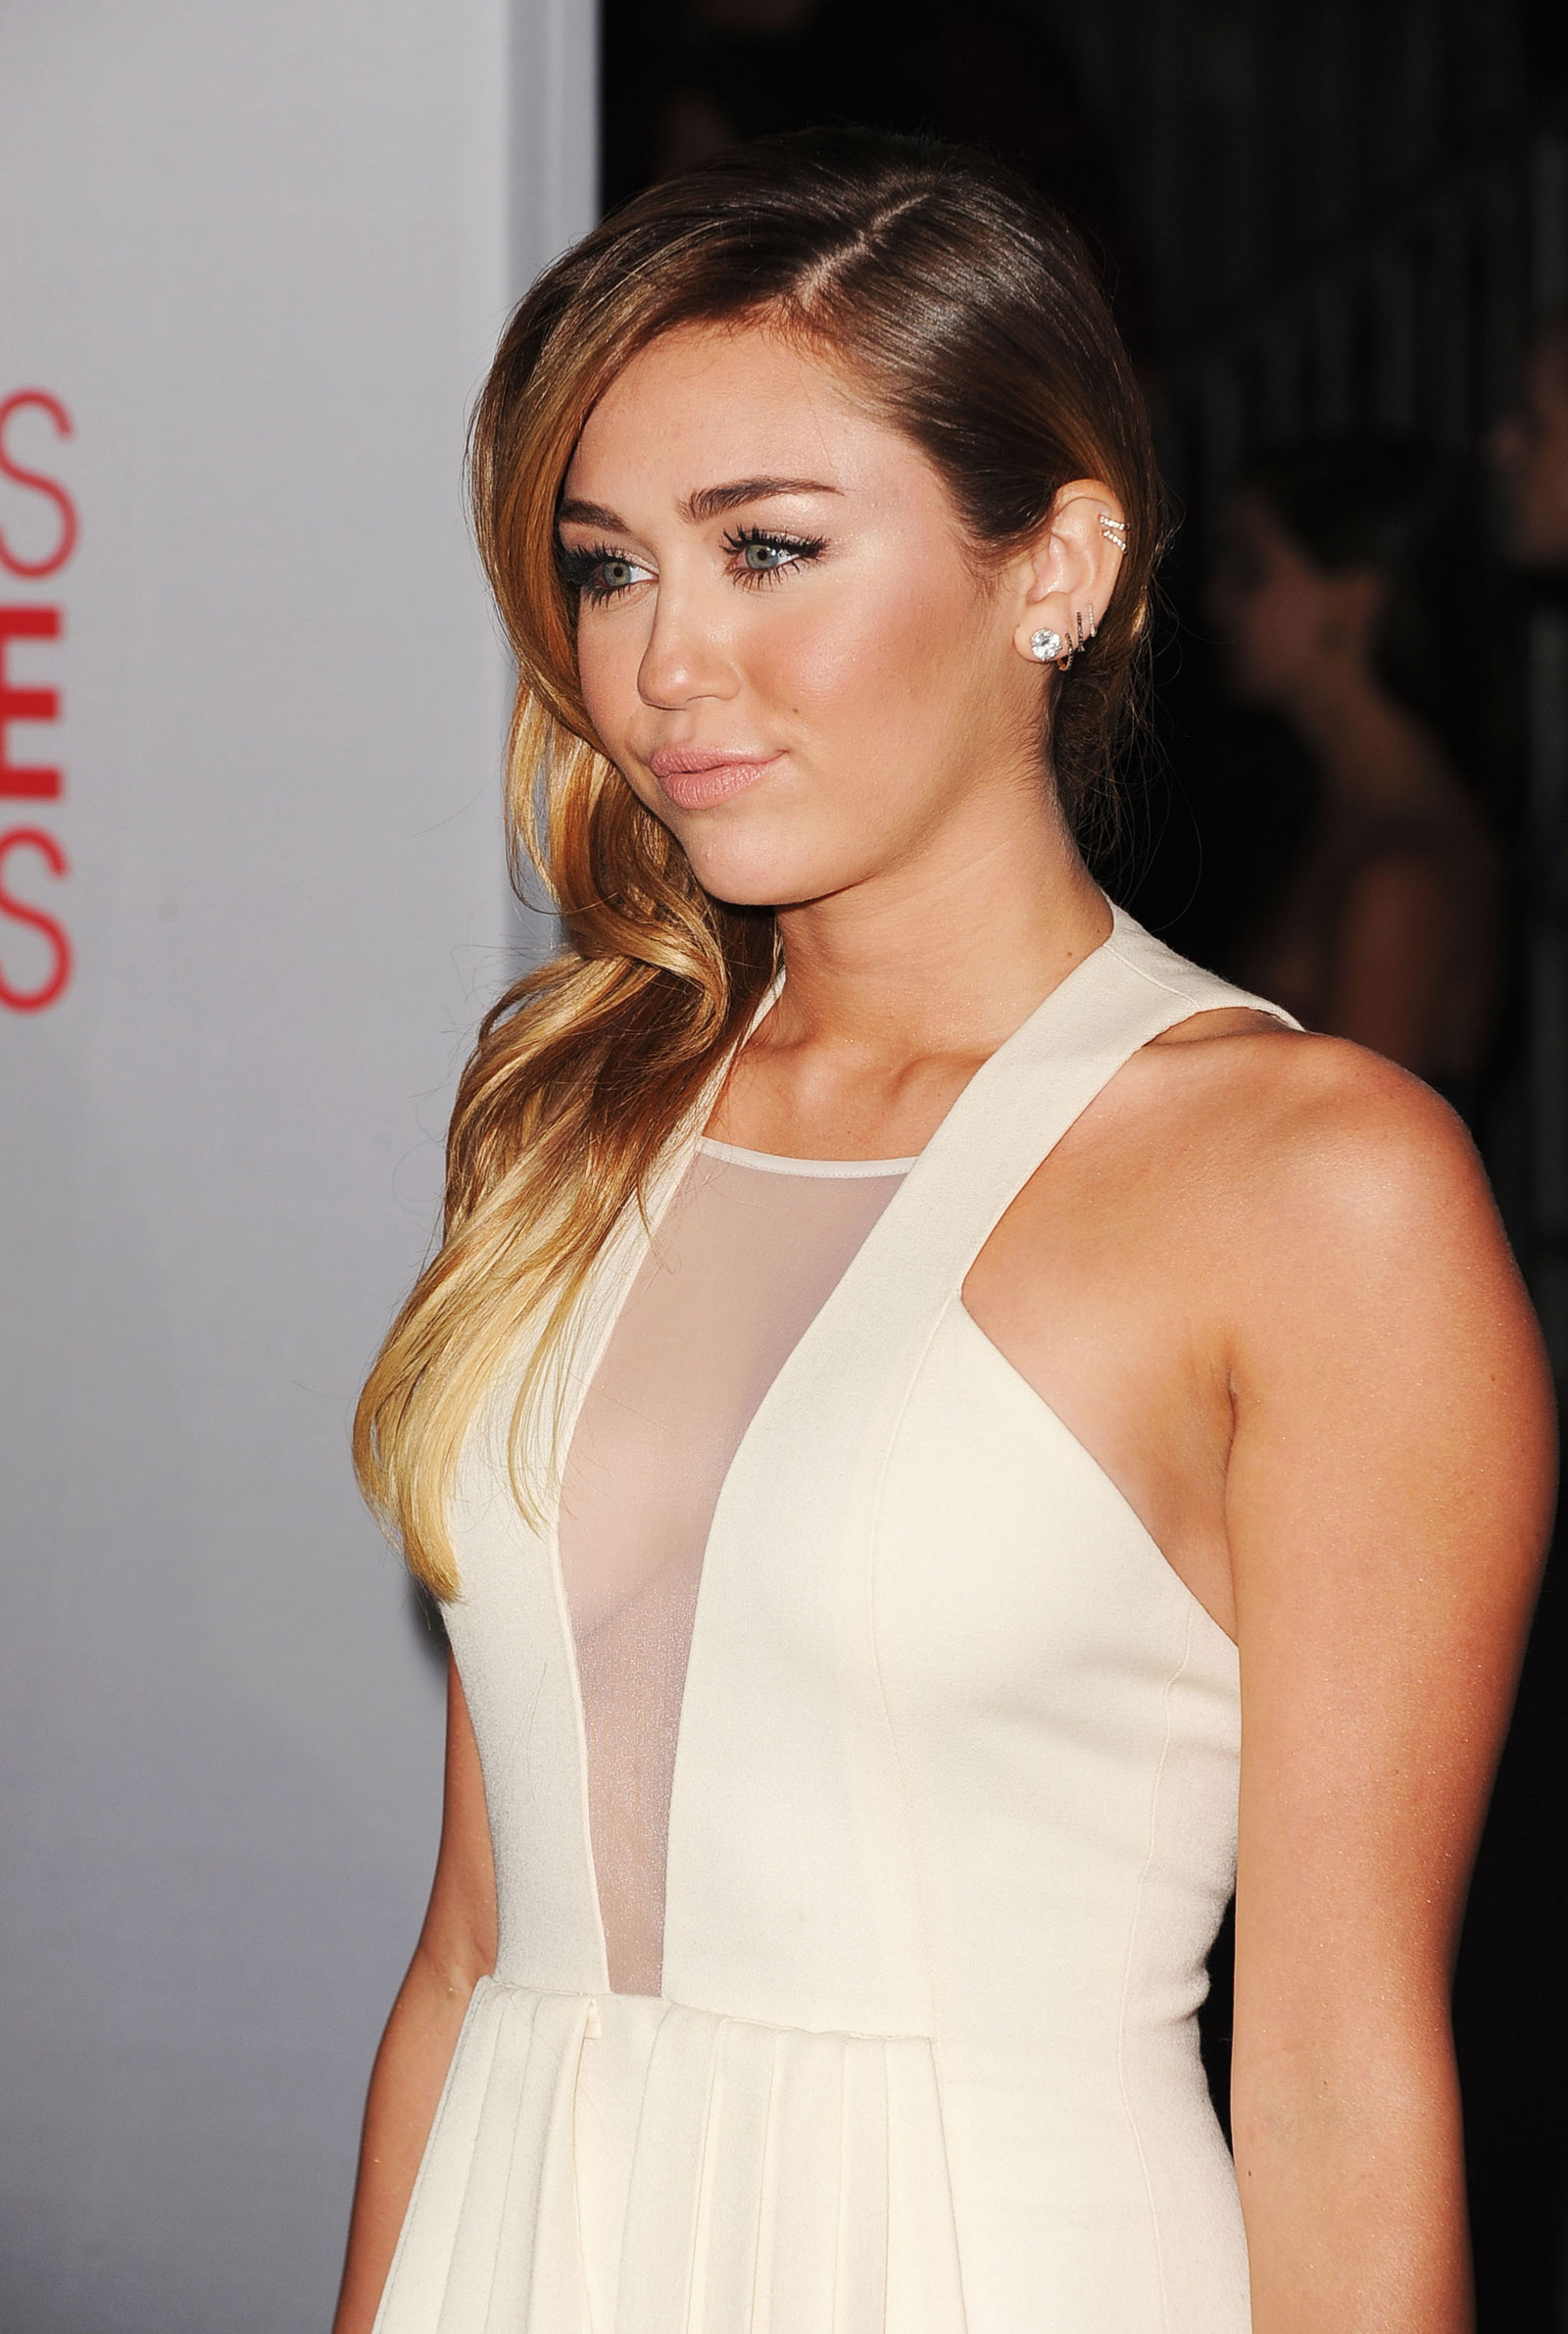 Miley Cyrus At The 2012 People's Choice Awards At Nokia